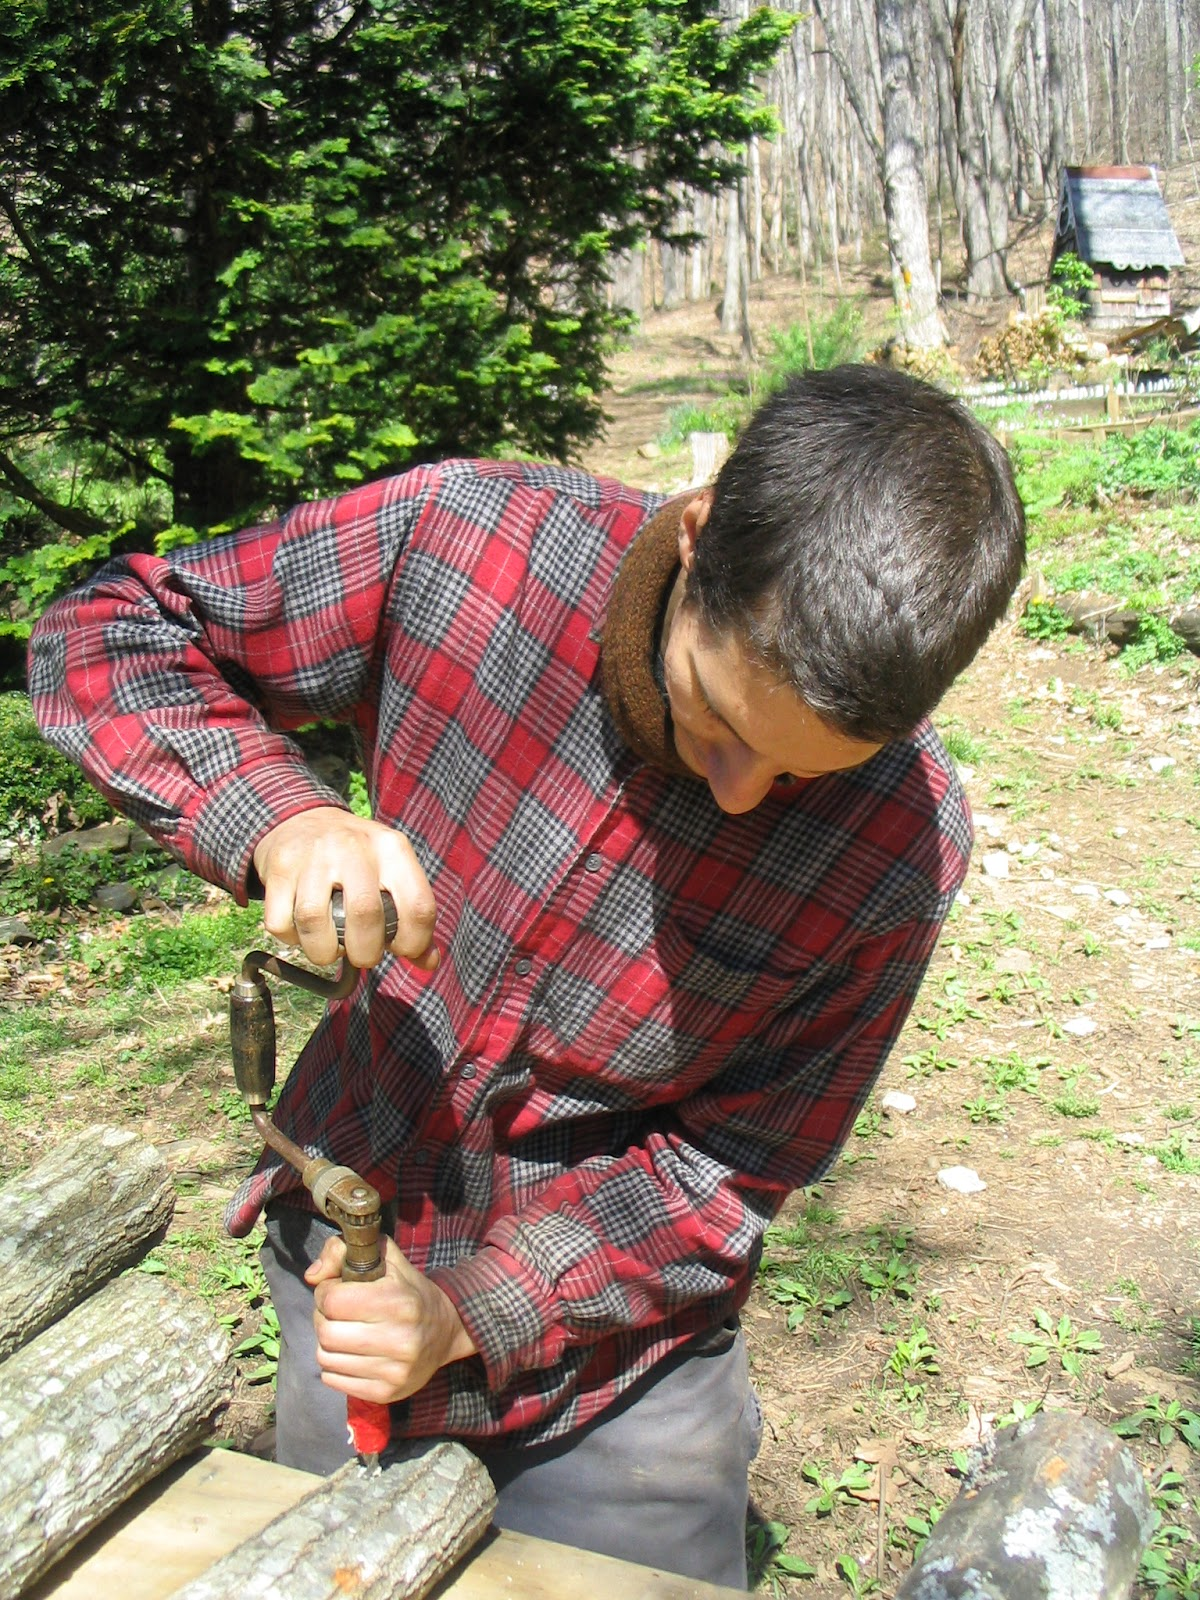 Sean hand drilling holes in the log!